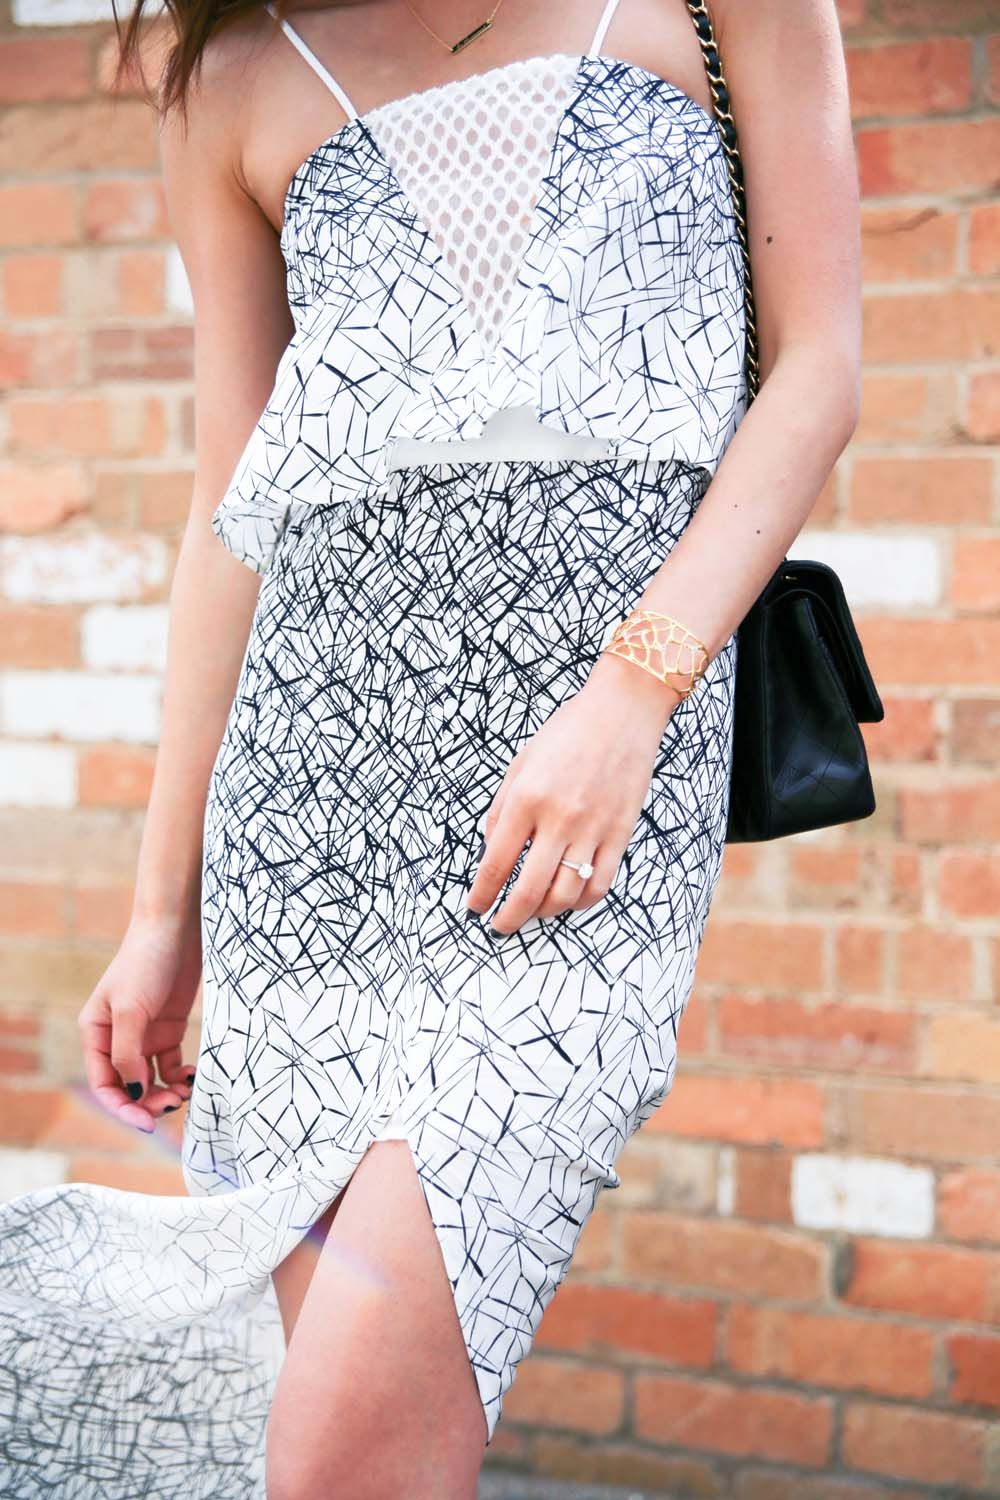 Pins And Needles Clothing Inspiration Manning Cartell Pins & Needles Maxi Dress  The Tia Fox  My Style Design Inspiration